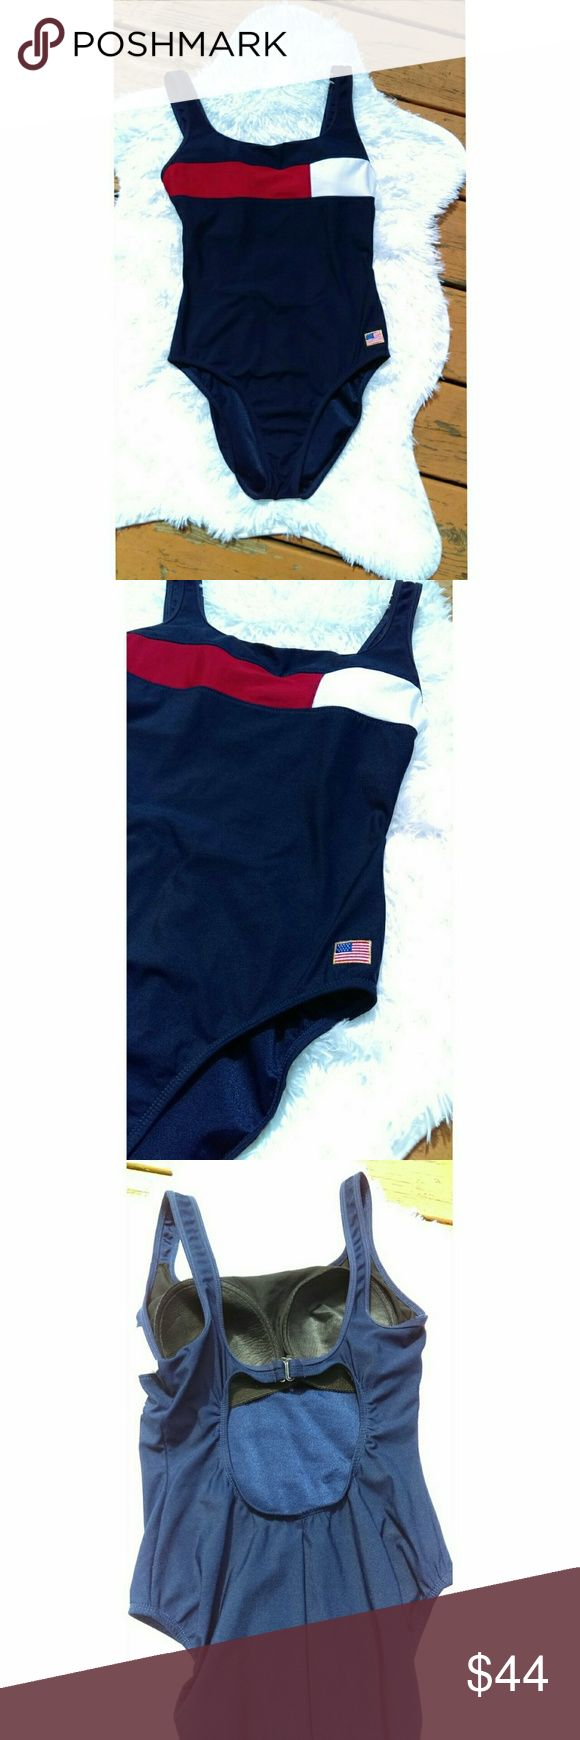 Tommy Hilfiger inspired one piece swimsuit Super cute Tommy Hilfiger inspired one piece swimsuit. No flaws. Size: 14 tall beach native Swim One Pieces